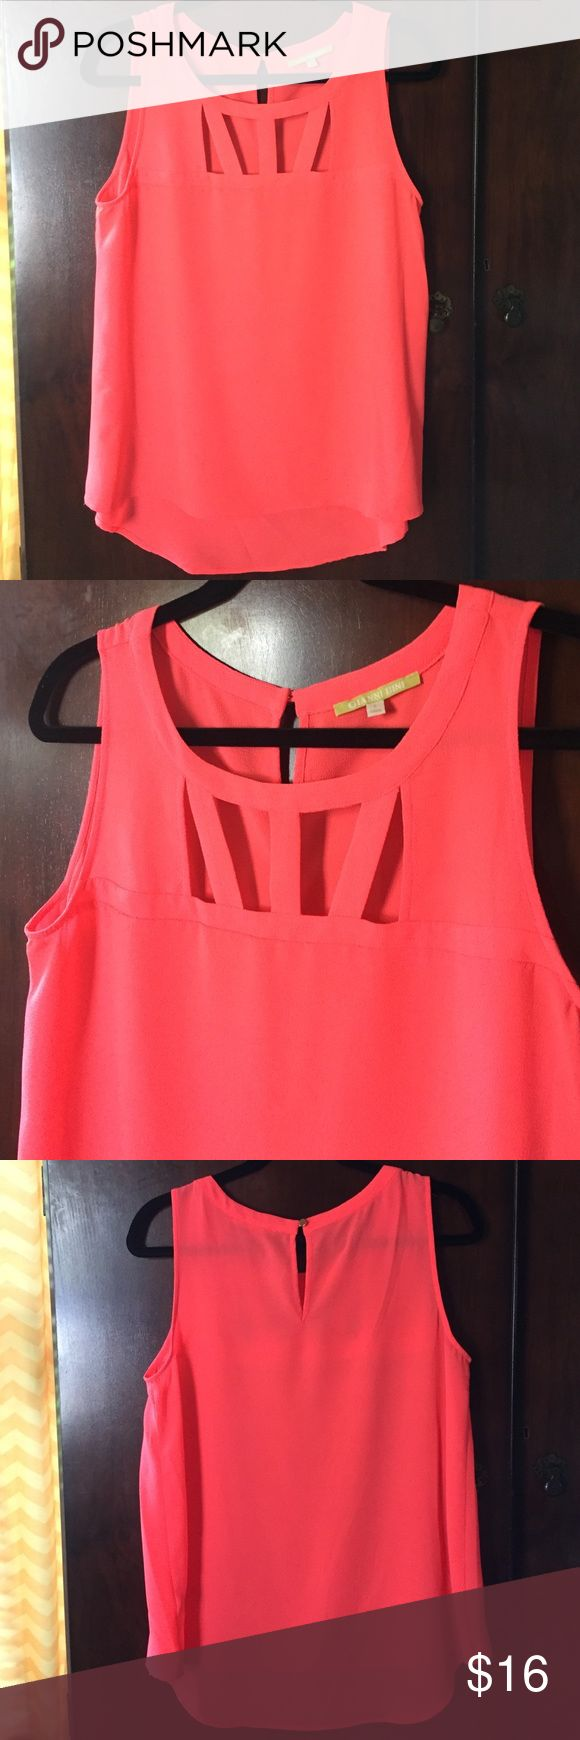 """Gianni Bini Bright Salmon Blouse Sz L Super cute sleeveless top in a bright/neon Salmon color featuring a cut out effect along the front neckline and a keyhole entry back. Not sure I ever wore it, but tags have been removed. 100% Polyester. Like new condition. Armpit to armpit 19.5"""". Please feel free to ask me any questions or make me an offer. Thanks for checking out my closet and remember I offer a great bundle discount! Gianni Bini Tops Blouses"""